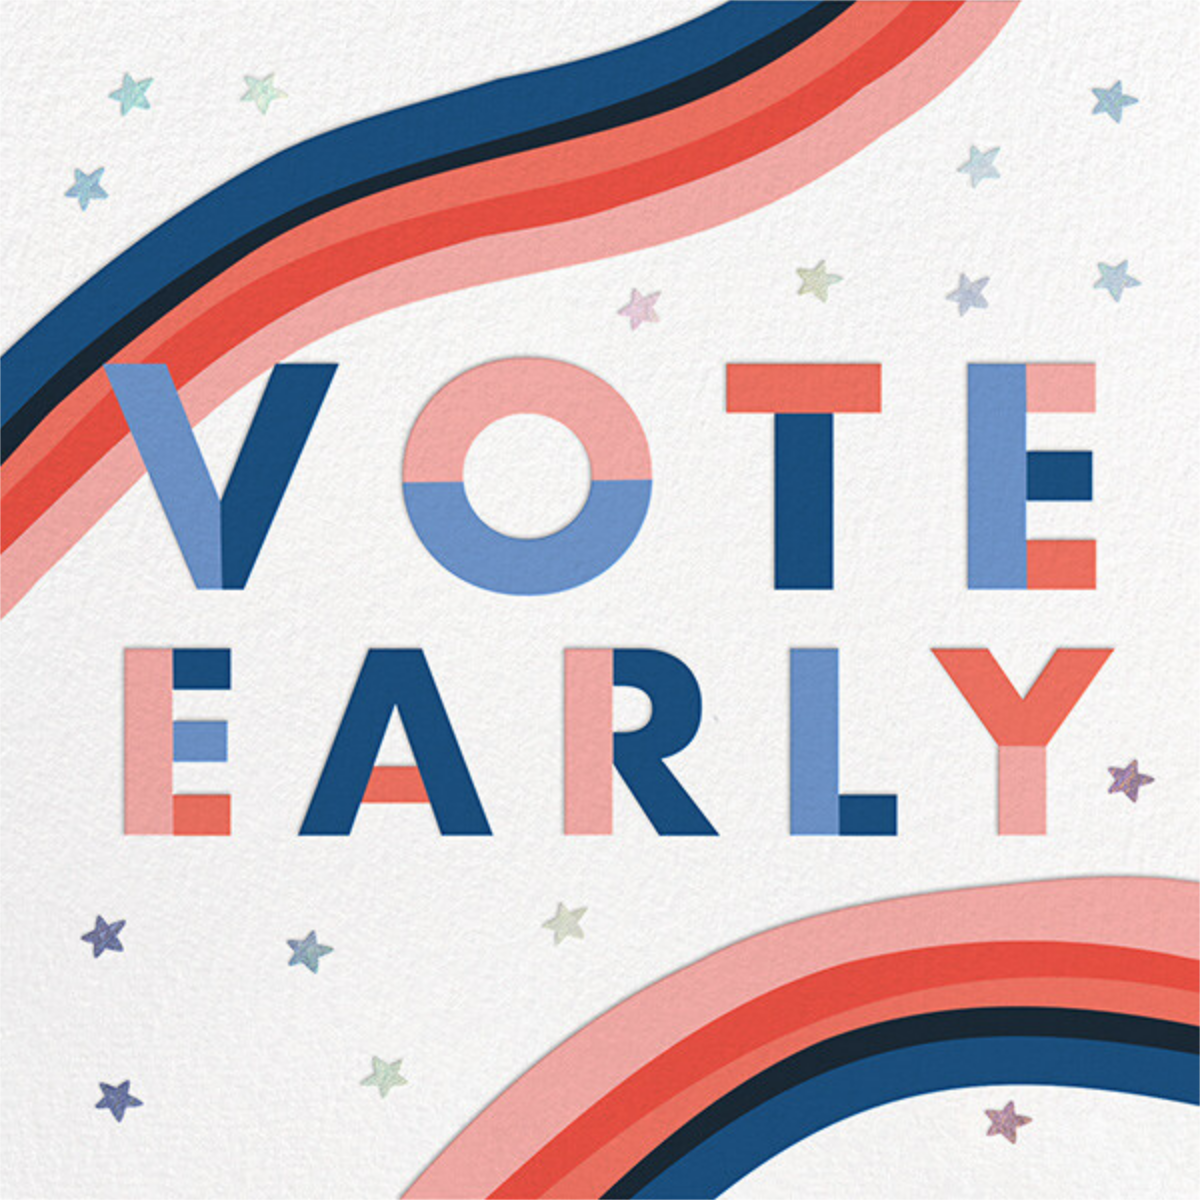 Vote Early - Hello!Lucky - Political action